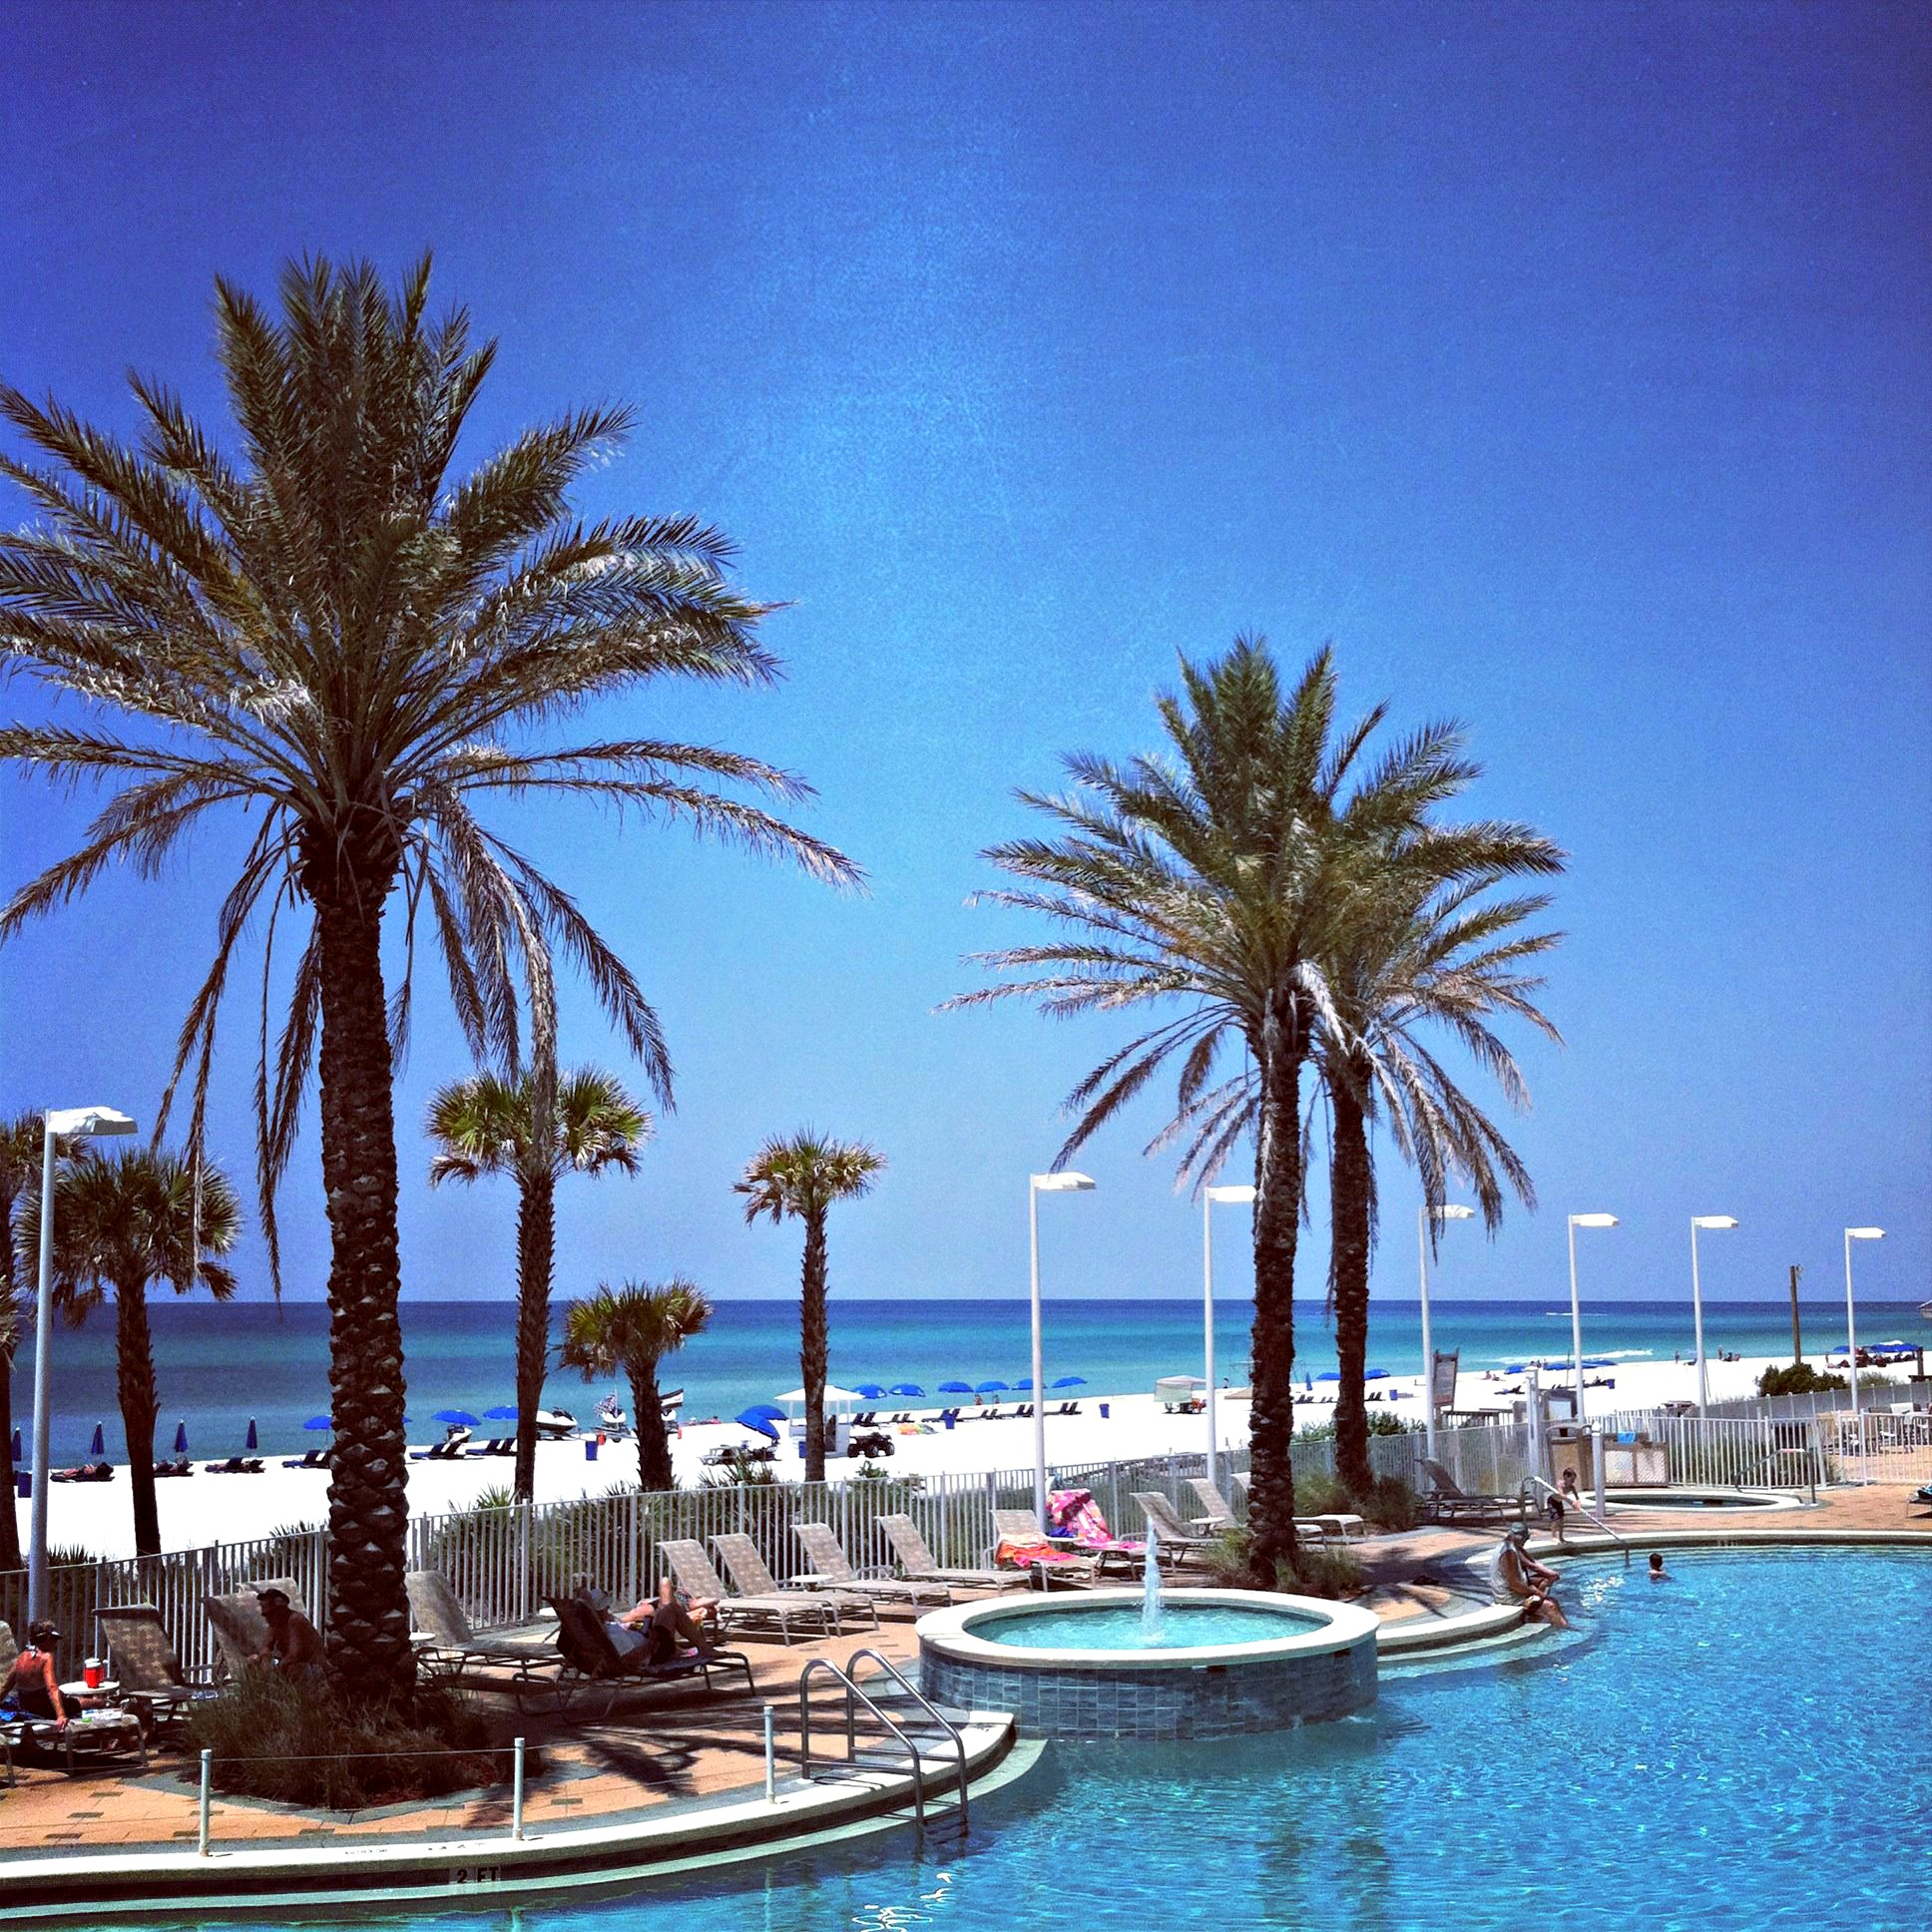 Palm trees and attractive landscaping frame the Gulf-front pool at Boardwalk Beach Resort in Panama City Beach.